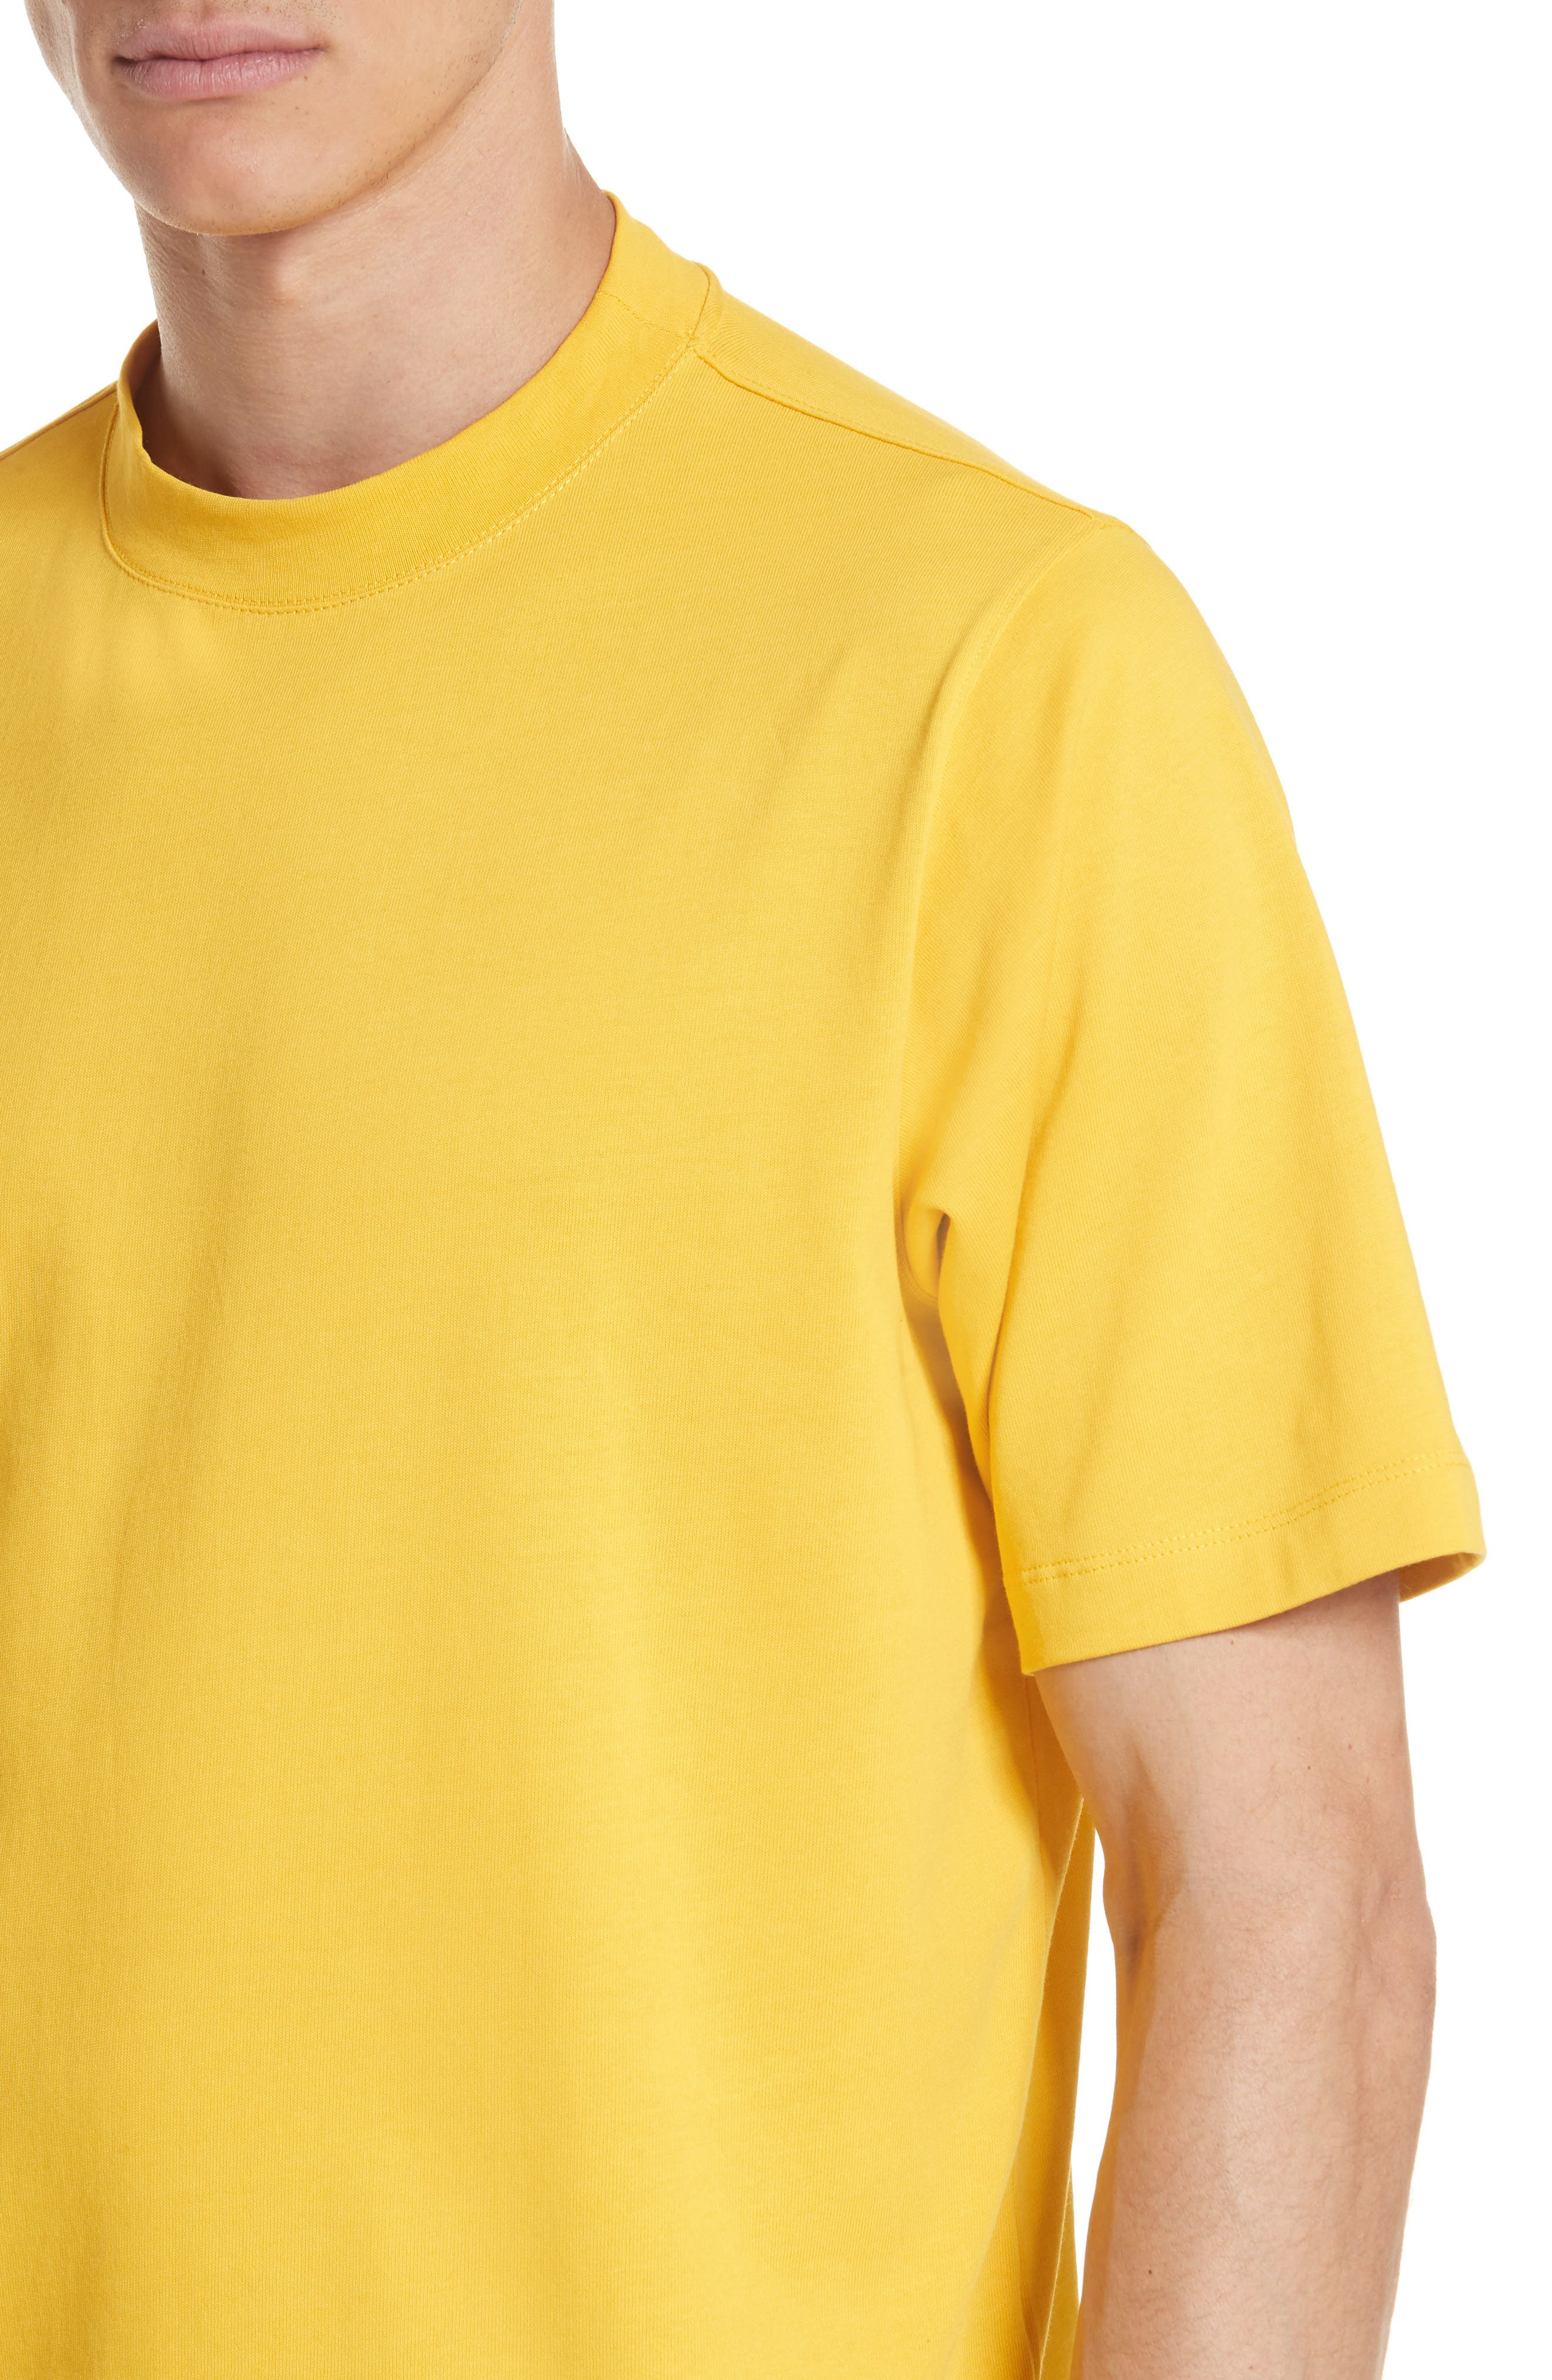 Tall T-Shirt,                             Alternate thumbnail 4, color,                             700